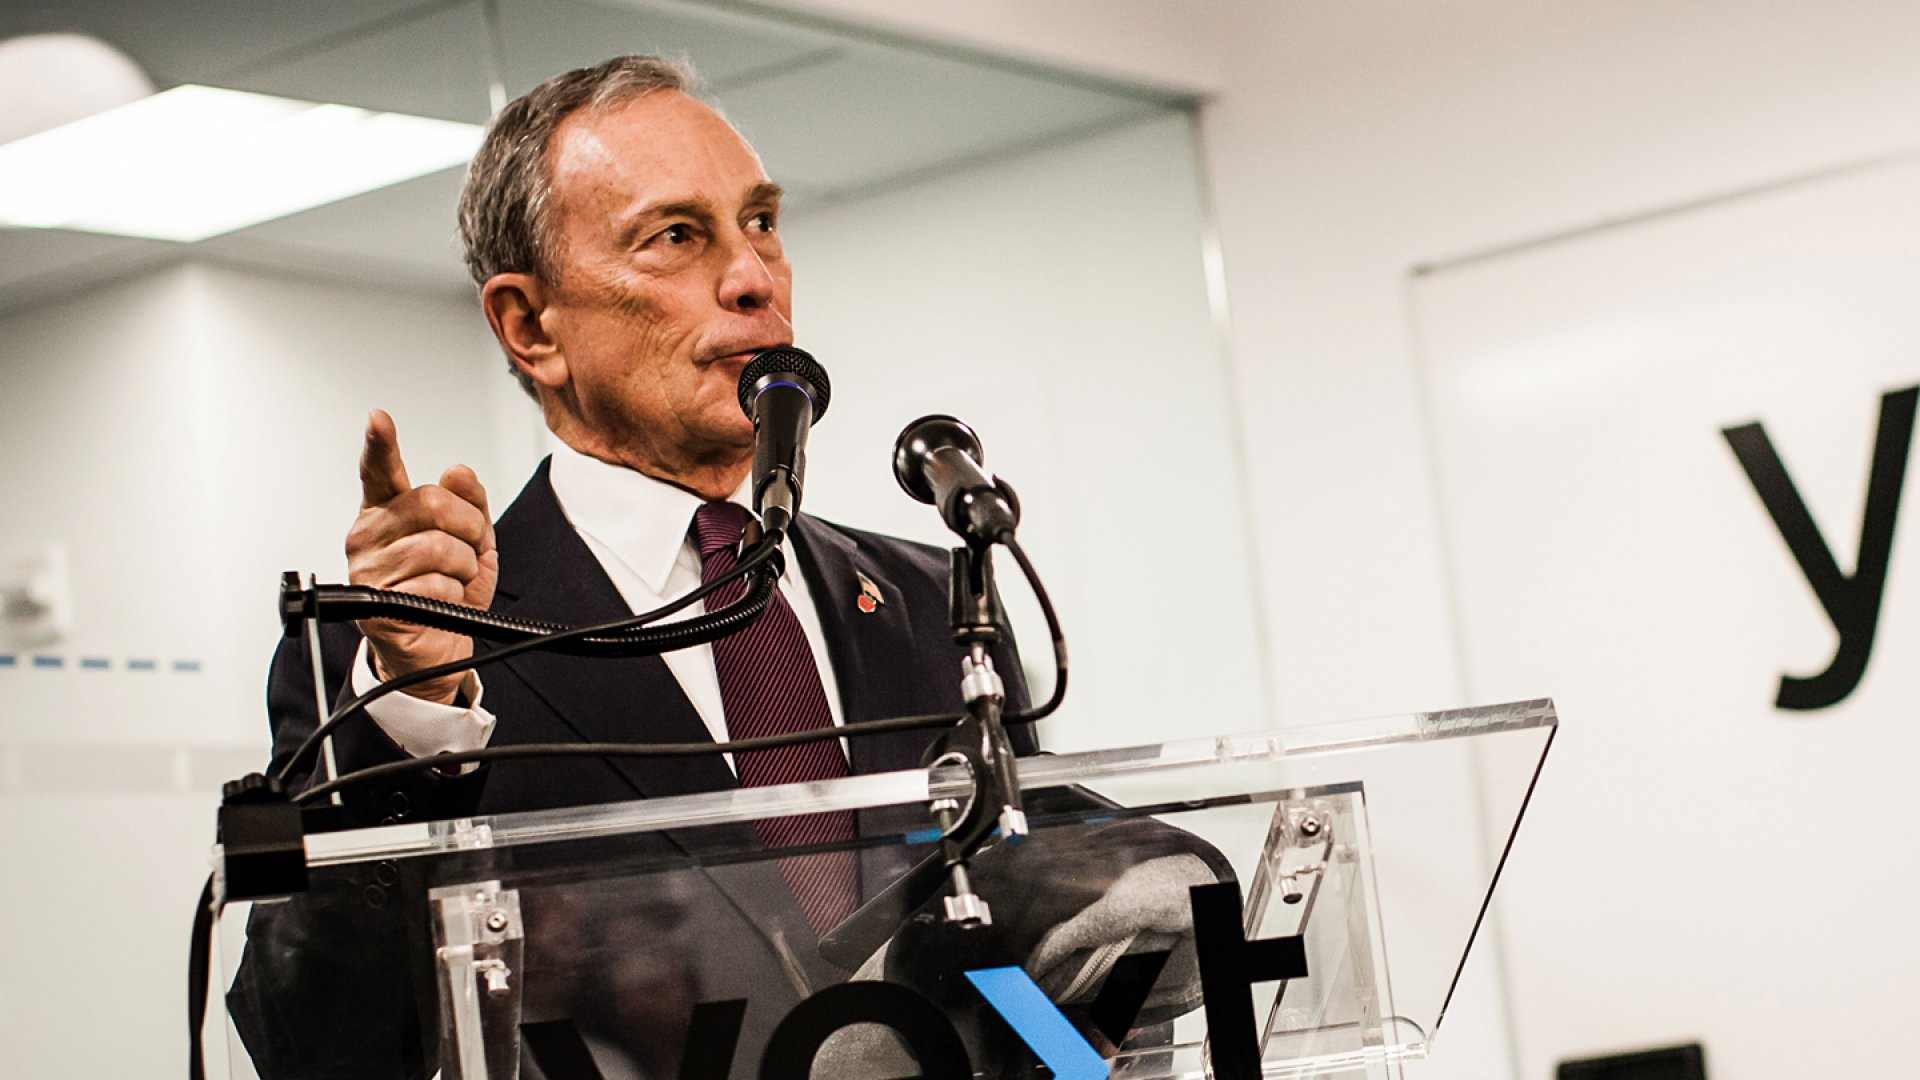 Don't Let 'Em Eat Your Lunch: Bloomberg's Best Advice